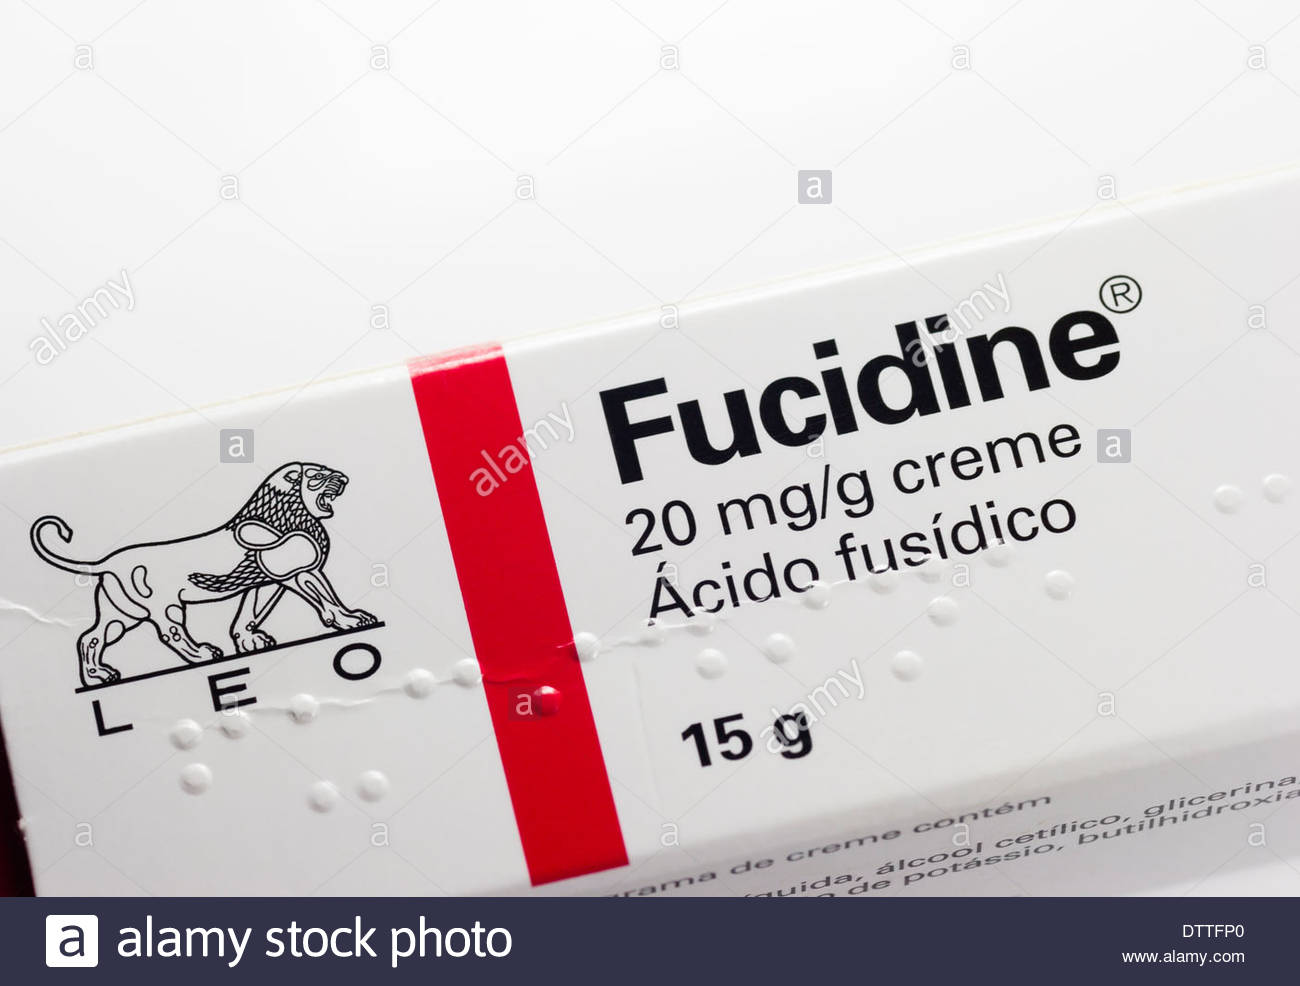 Fucidine cream an antibacterial agent used to treat a number of bacterial skin infections as supplied in Portugal - Stock Image